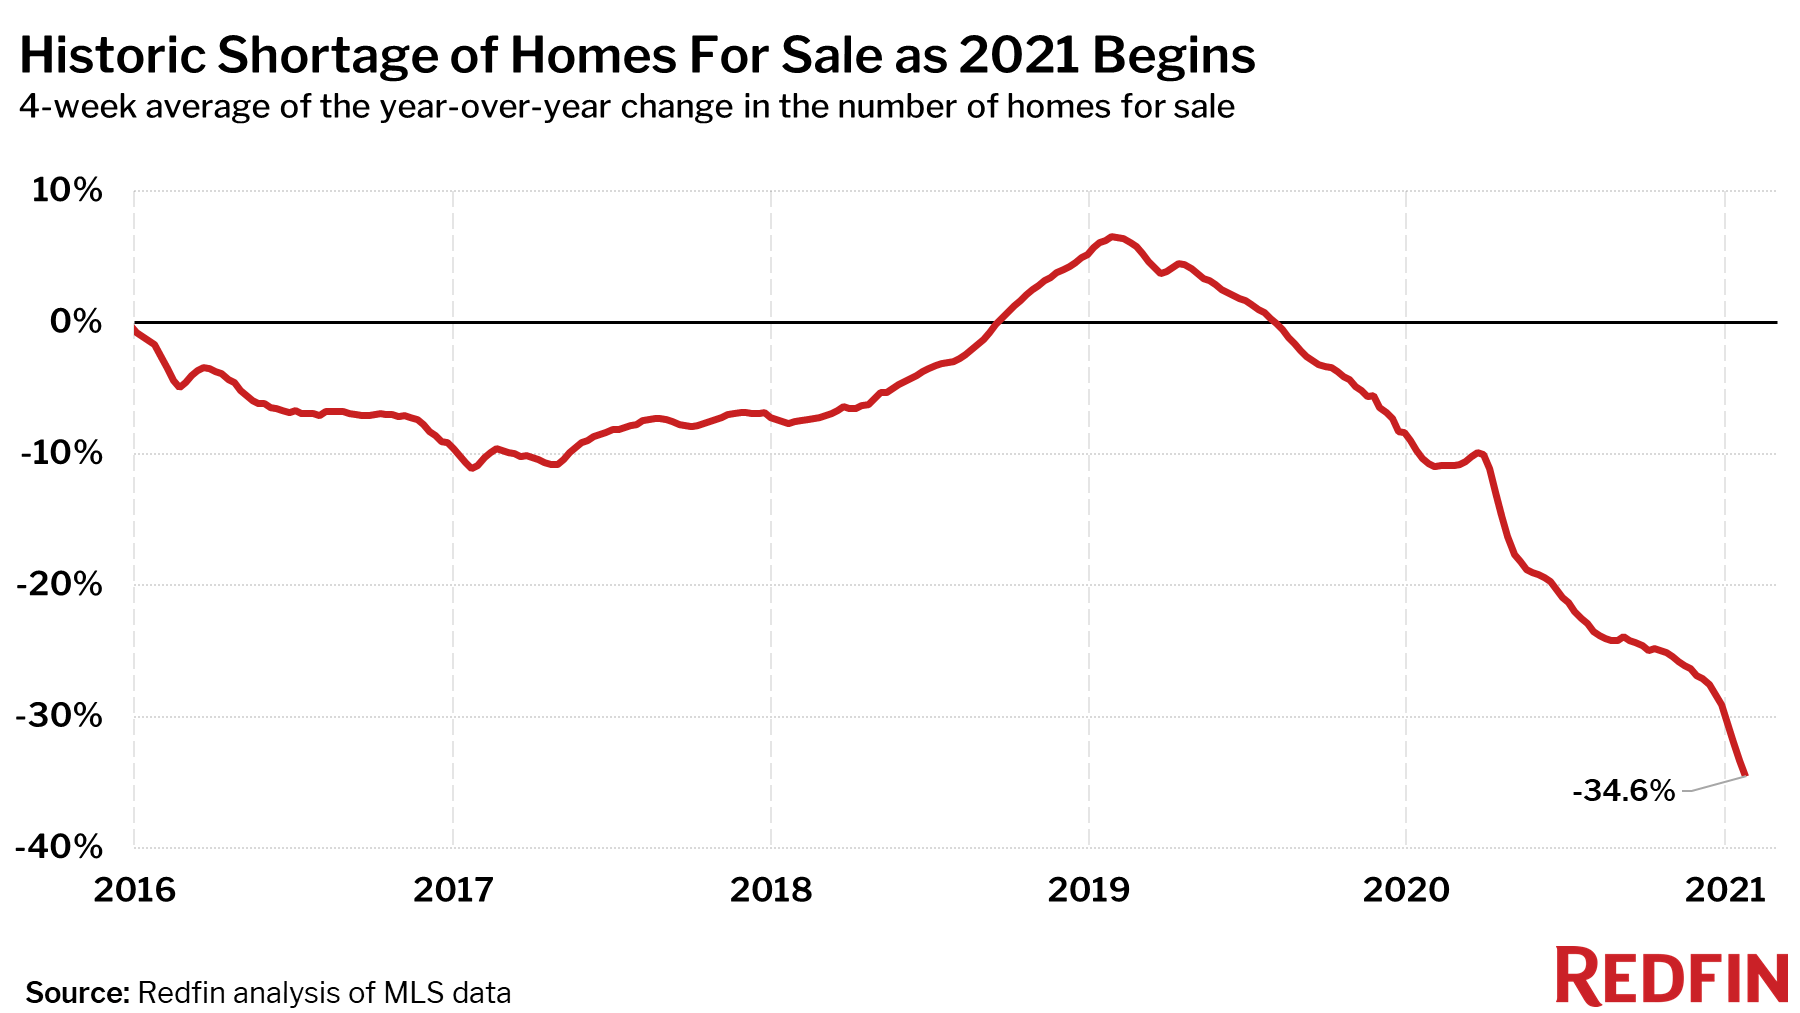 Historic shortage of homes for sale as of 2021 - Redfin